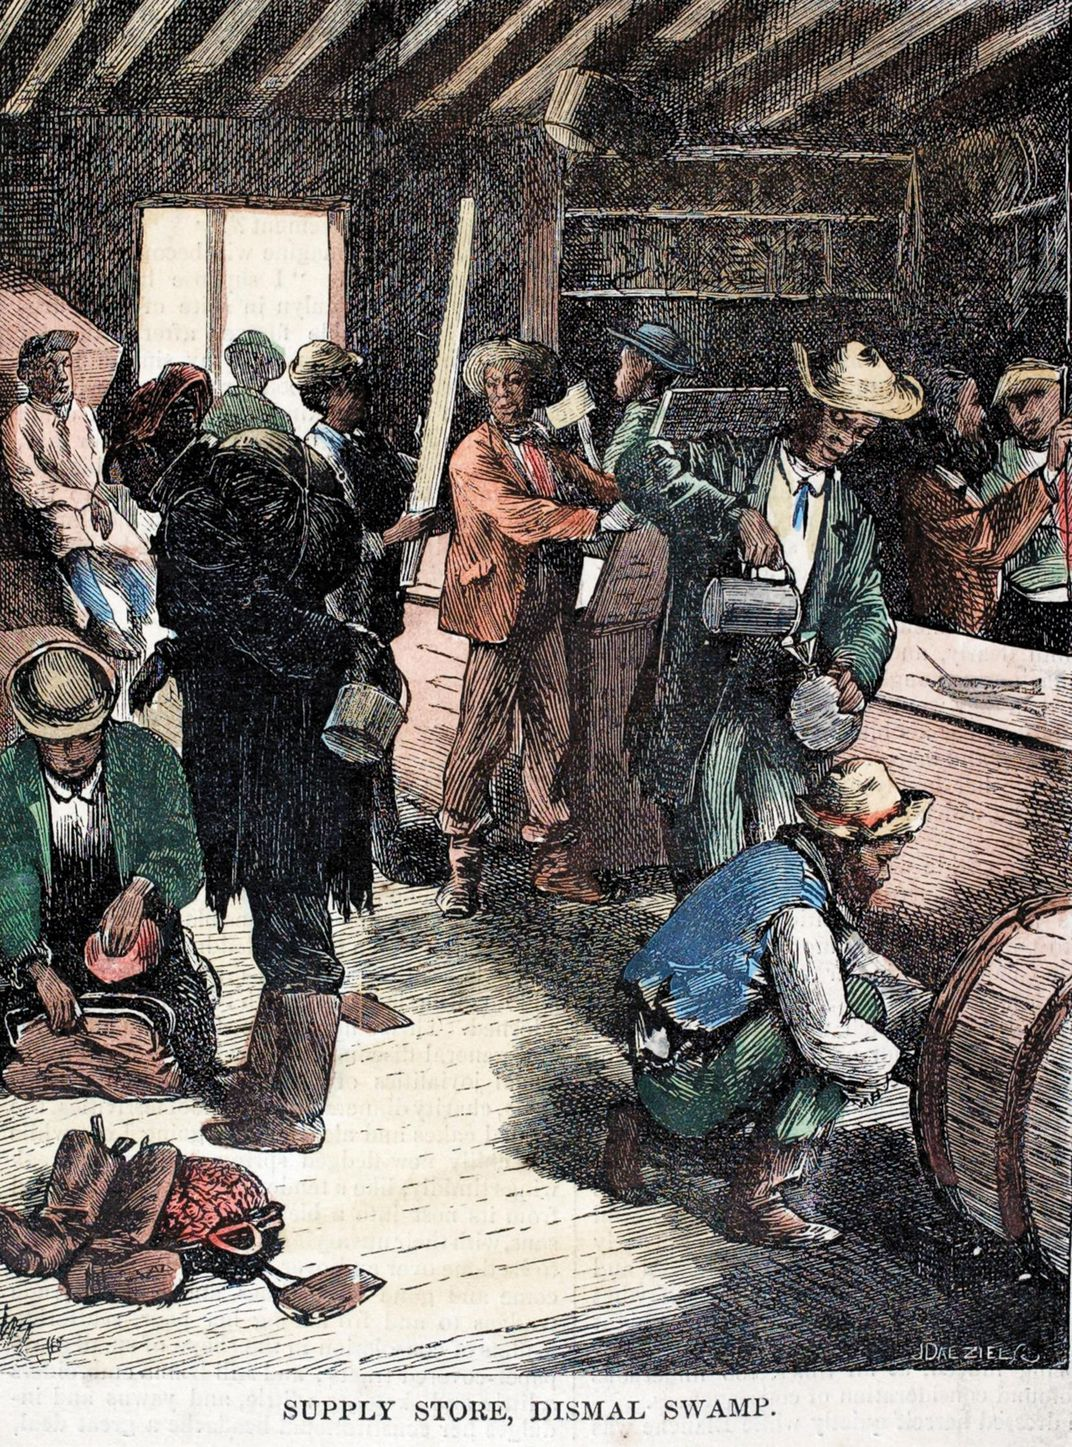 1873 Great Dismal Swamp Supply Store